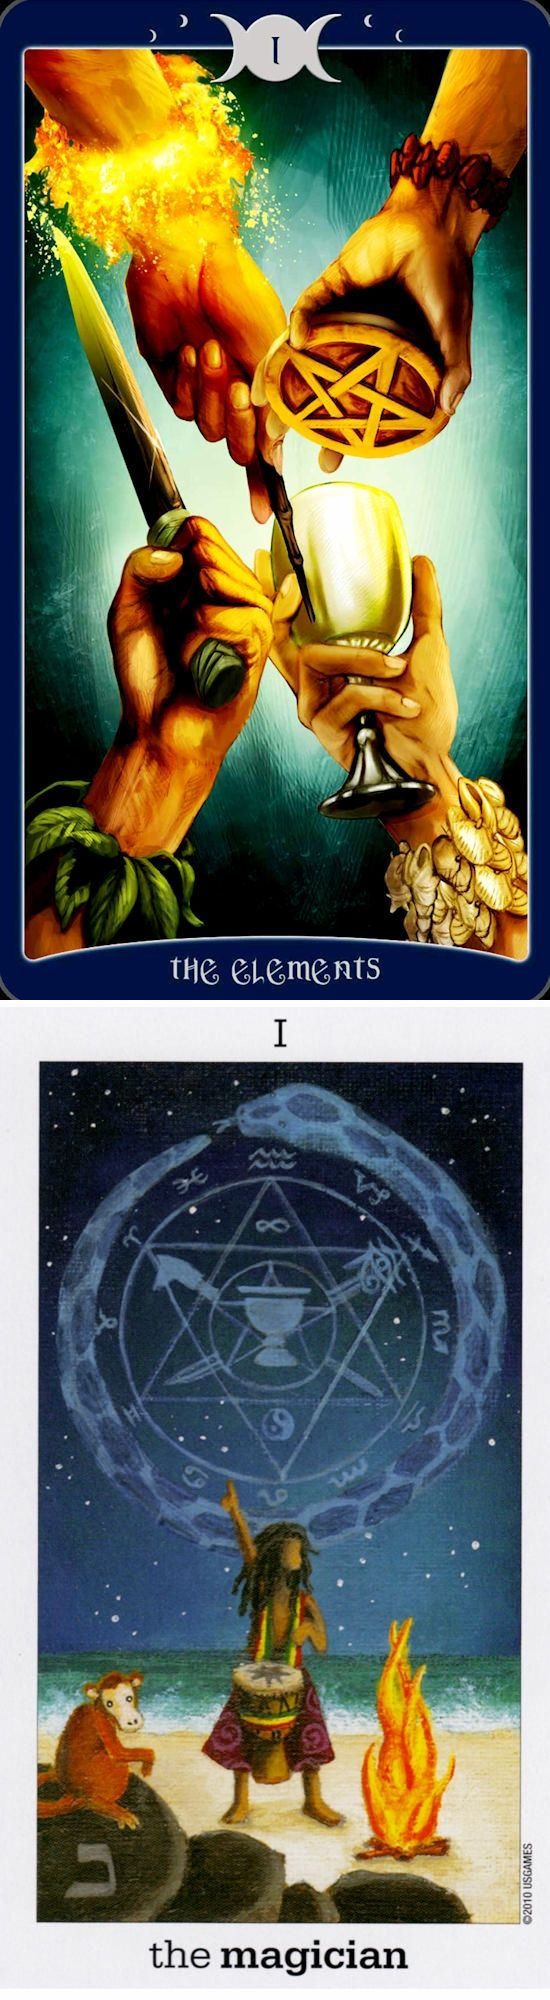 THE MAGICIAN: manifestation of desires and lies (reverse). Book Of Shadows Tarot deck and Sunmoon Tarot deck: free online tarot reading yes or no, free tarot reading free and tarotmusic. Best 2018 predictions anchor chart and tarot decks. #wheeloffortune #android #spell #ilovemywitchyways #emperor